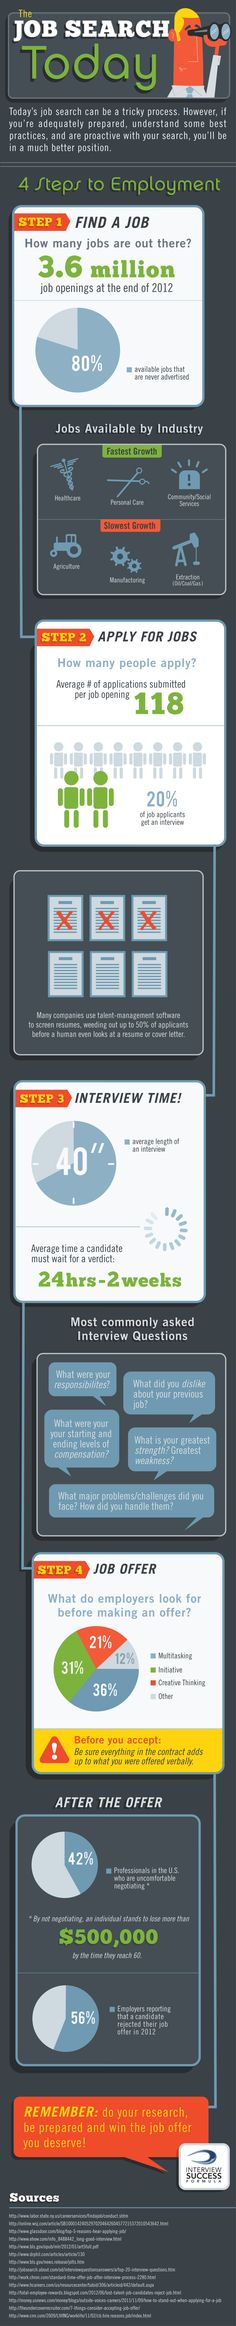 The job search today [infographic]